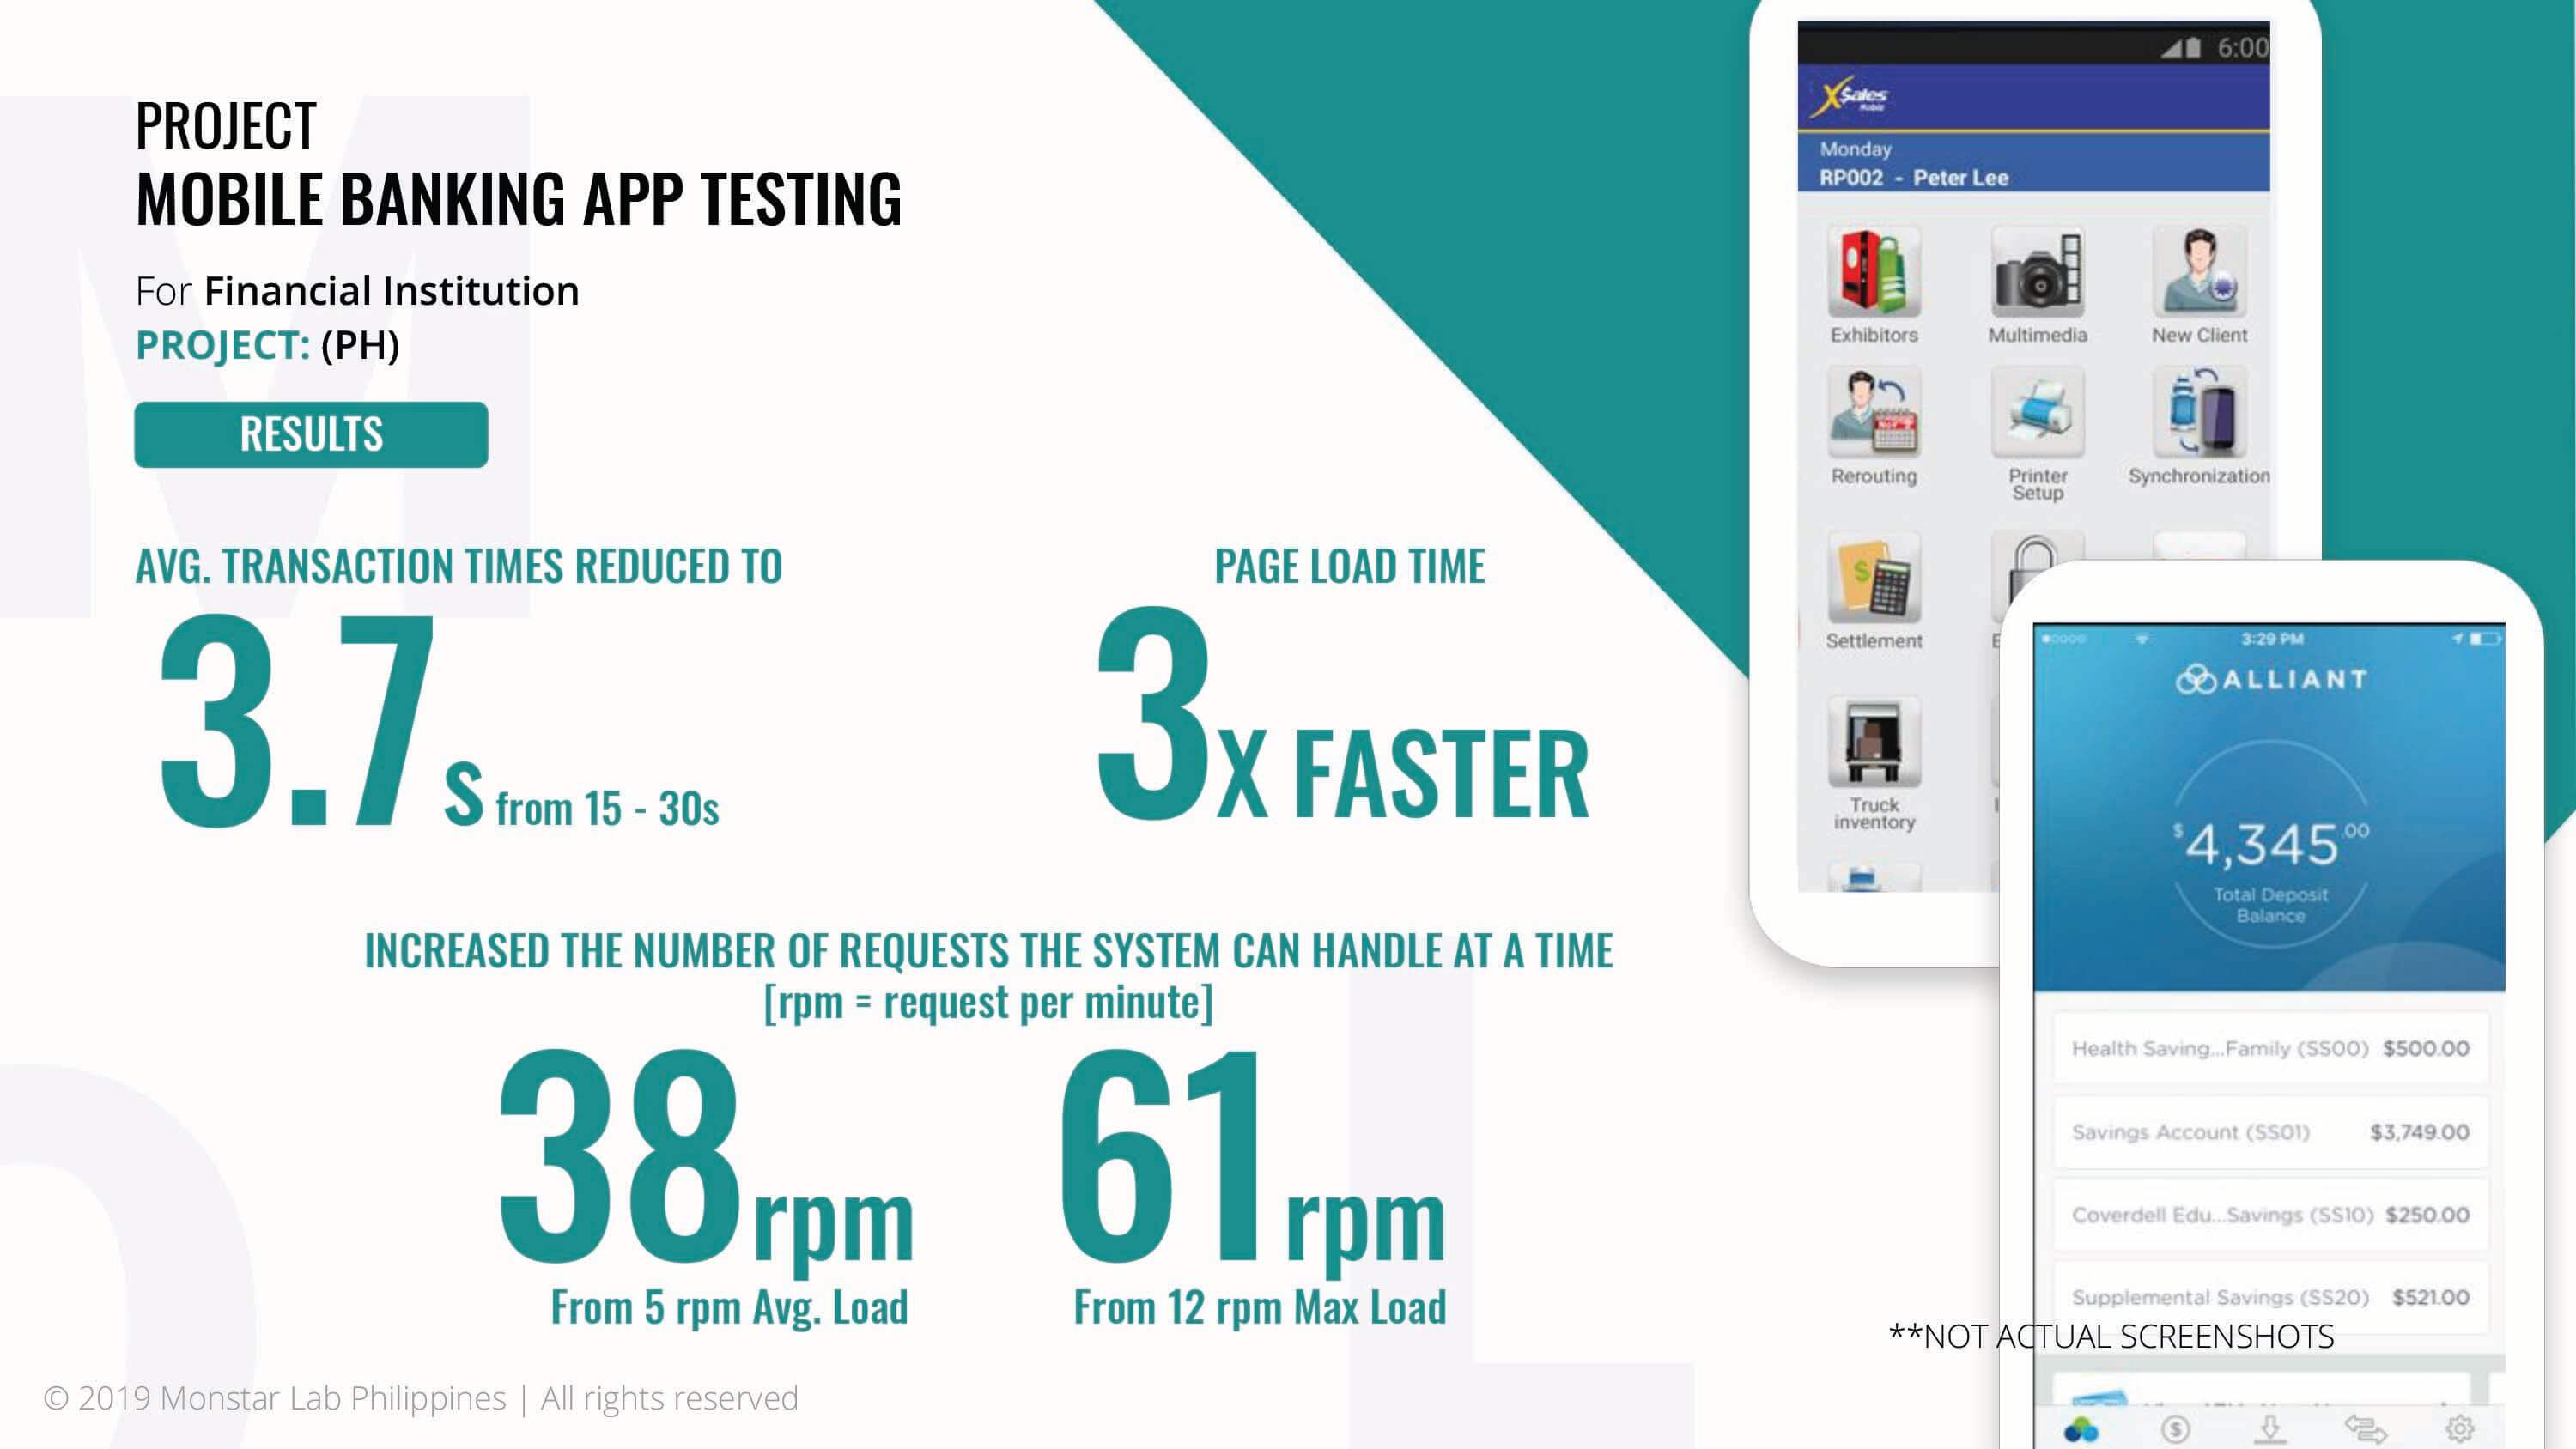 Mobile banking app testing, Monstar Lab PH fintech app testing case study results